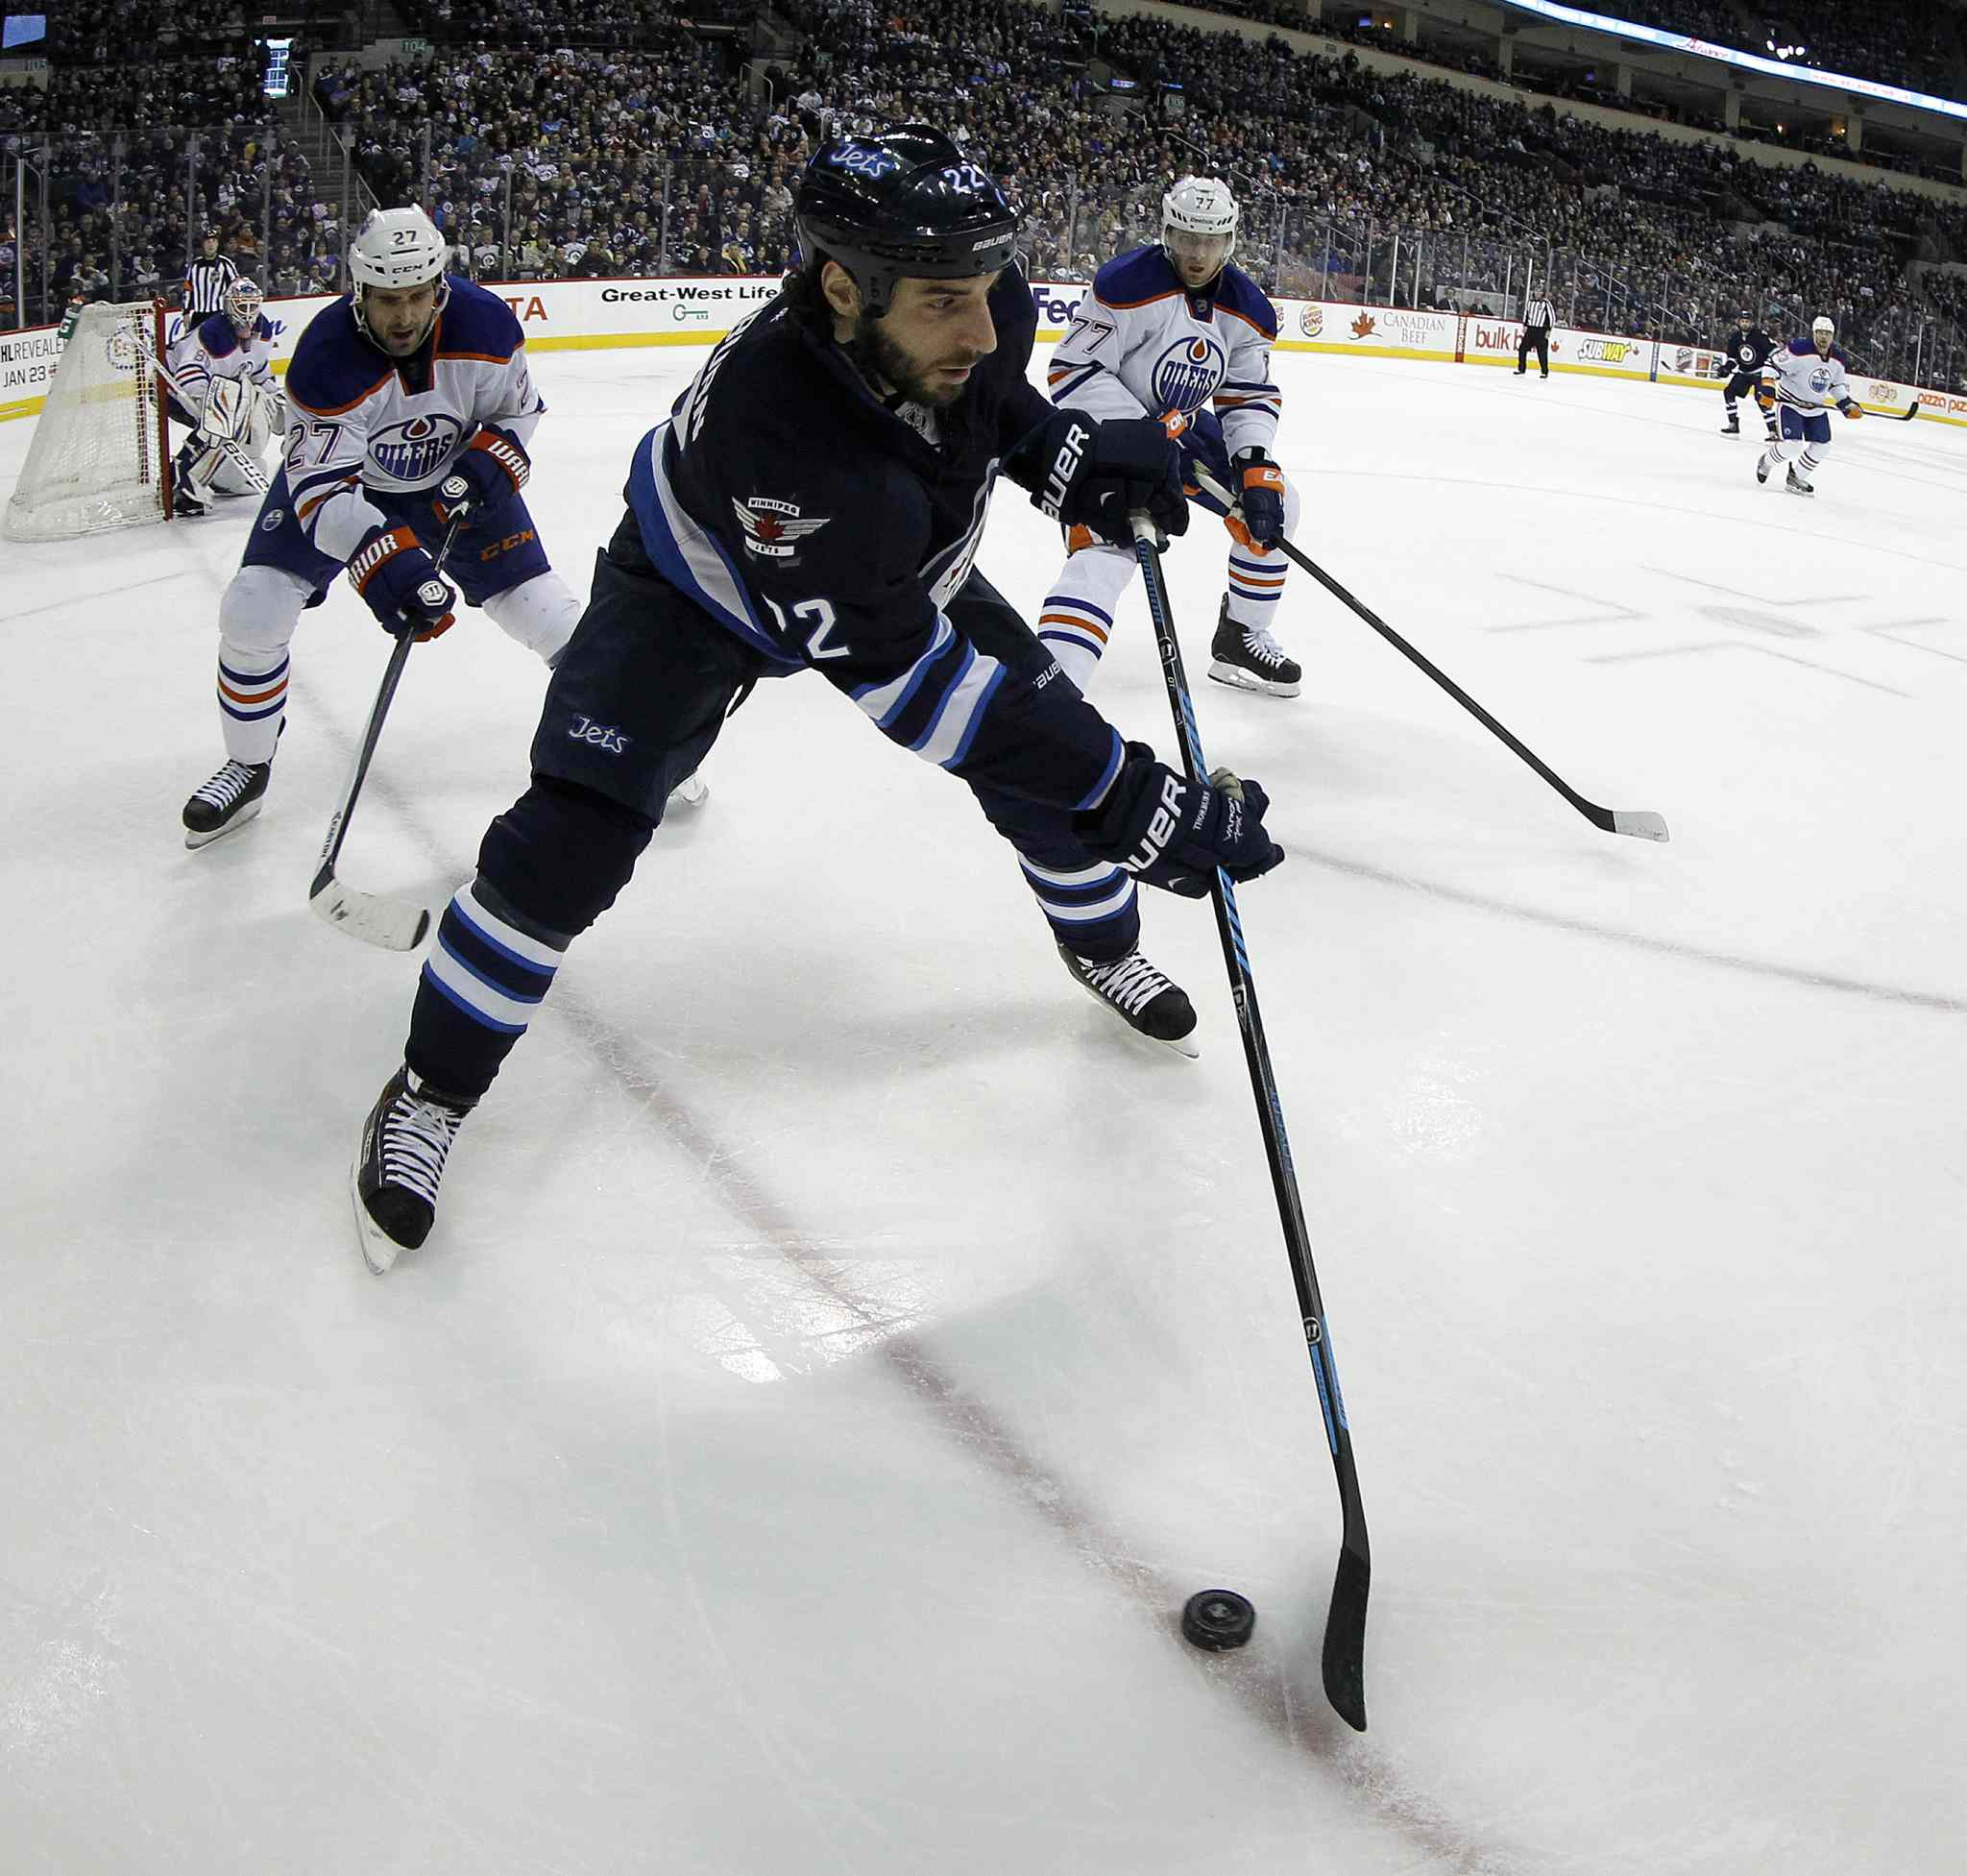 Winnipeg Jets' Chris Thorburn (22) carries the puck in front of Edmonton Oilers' Boyd Gordon (27) and Anton Belov (77) during second period in Winnipeg Saturday.